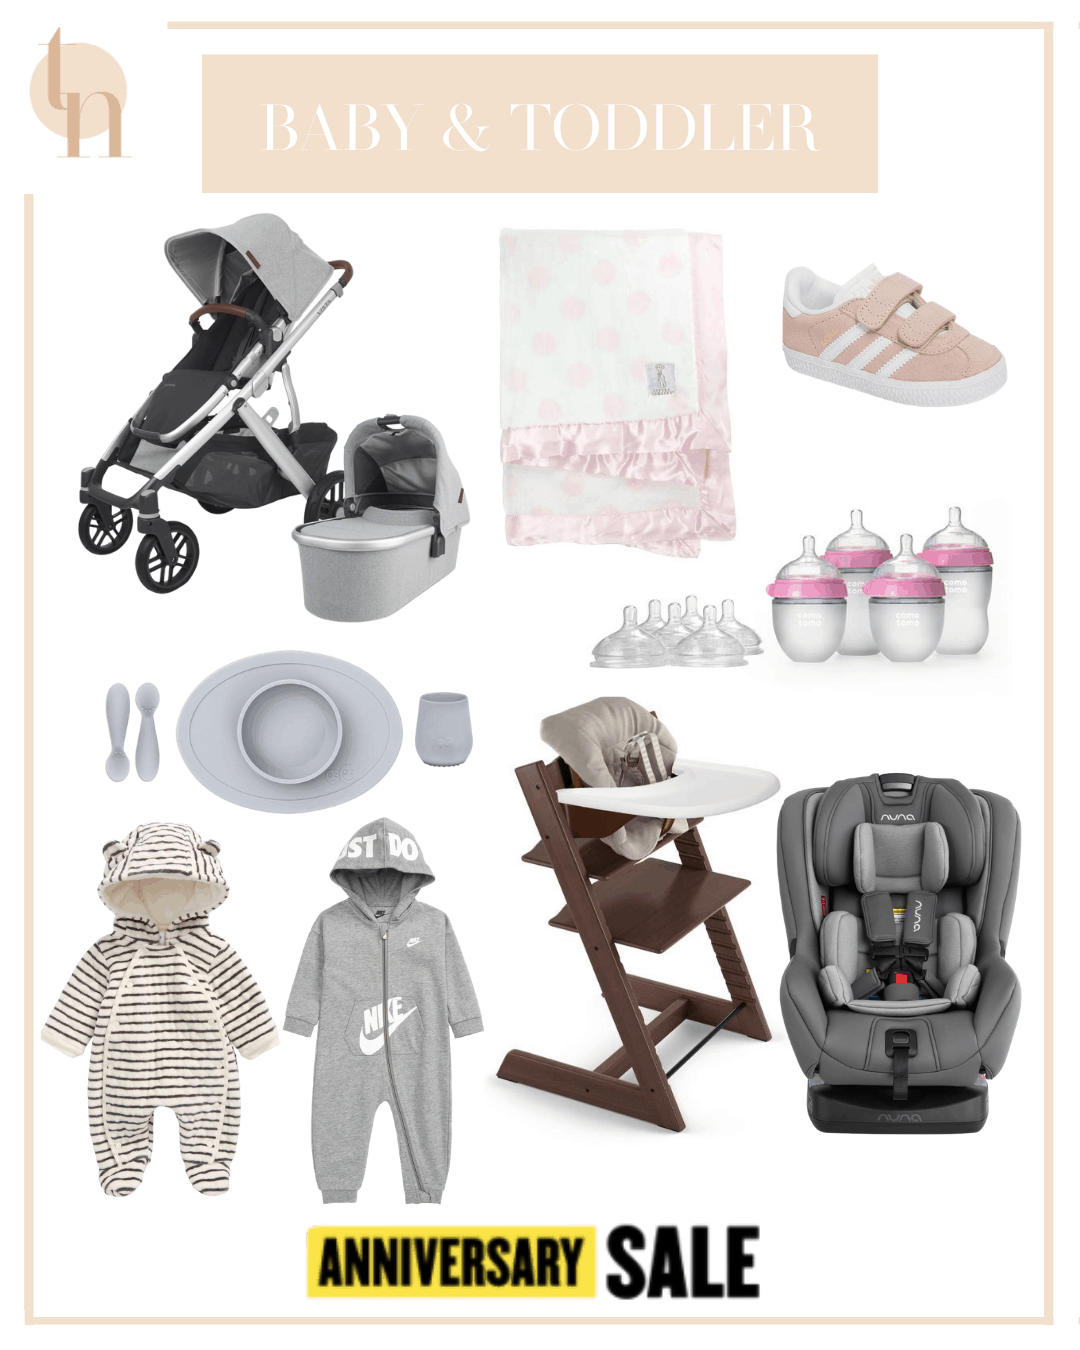 Nordstrom Anniversary Sale by popular Dallas life and style blog, Glamorous Versatility: collage image of NunaRAVA™ Flame Retardant Free Convertible Car Sea, NunaMIXX™ next Stroller, Uppa Baby Vista V2 Stella Stroller with Bassinet, NunaPIPA™ Lite LX Infant Car Seat & Base  Baby Hooded Bunting, Stokke Tripp Trapp Chair, Baby set, Cushion, & Tray Set, Nike Baby Clothing, Little Giraffe Luxe Dream Dot Faux Fur Baby Blanket, Maxi-Cosi Lara Ultra Compact Stroller, Maxi-CosiZelia Max 5-in-1 Modular Travel System, Maxi-Cosi Mico Max 30 Infant Car Seat, and Adidas Gazelle Sneaker.